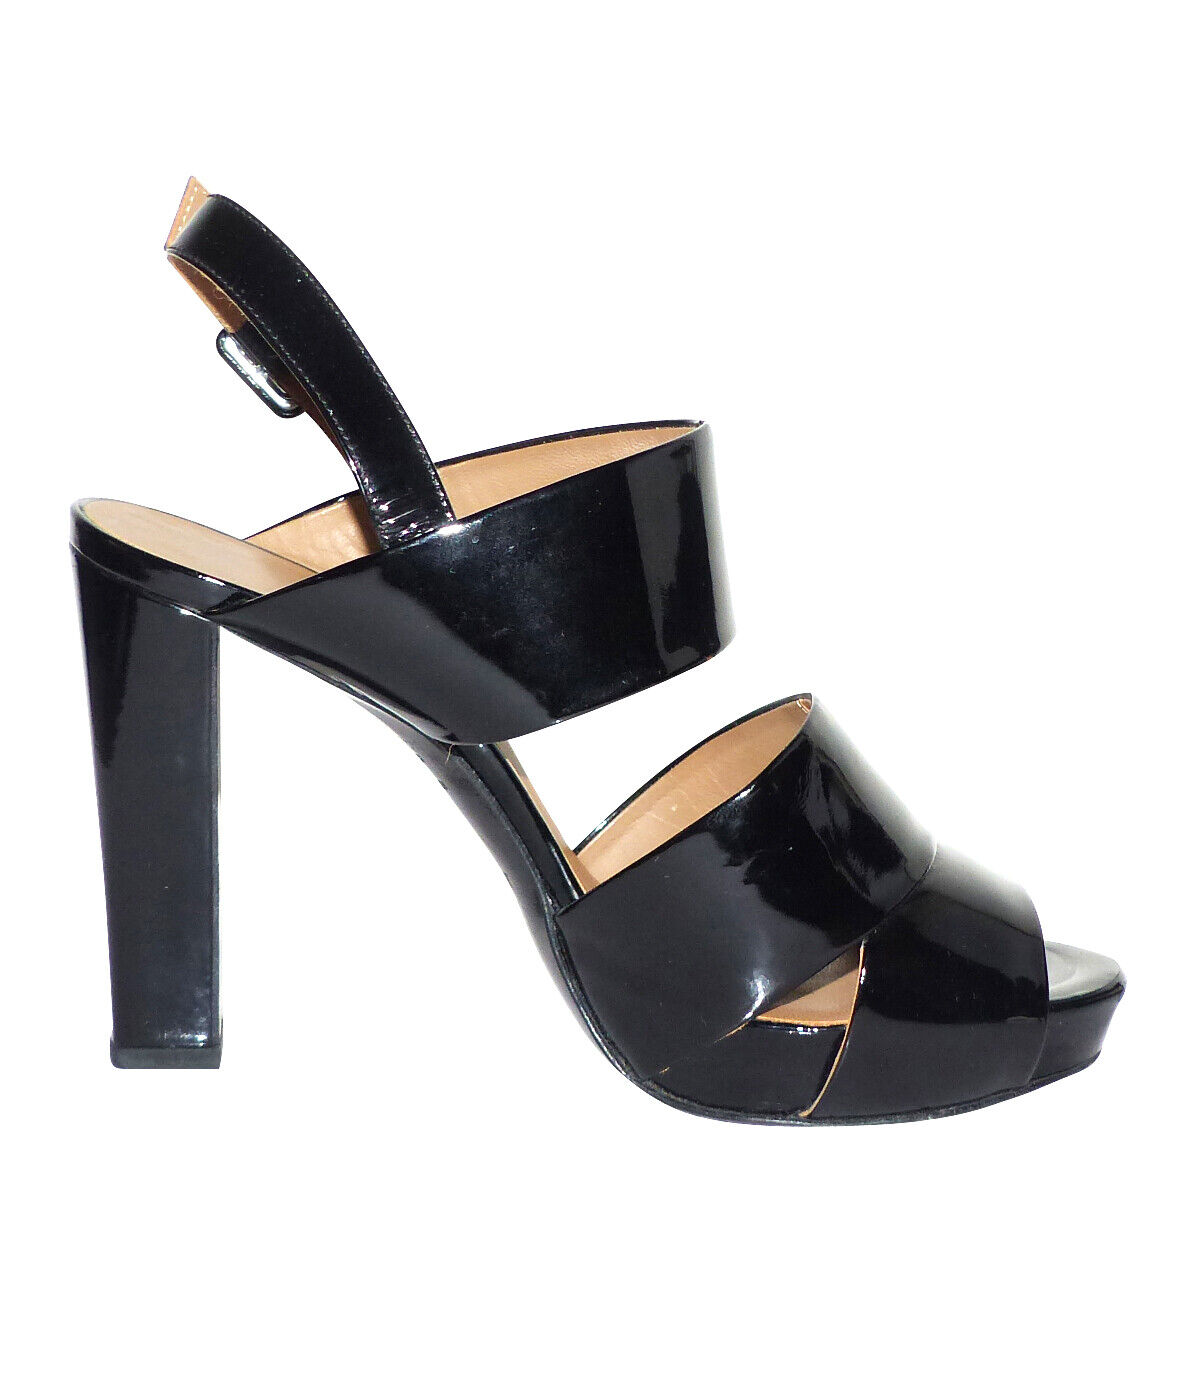 Hermes - sandales attraction en cuir verni noir - hermes sandals